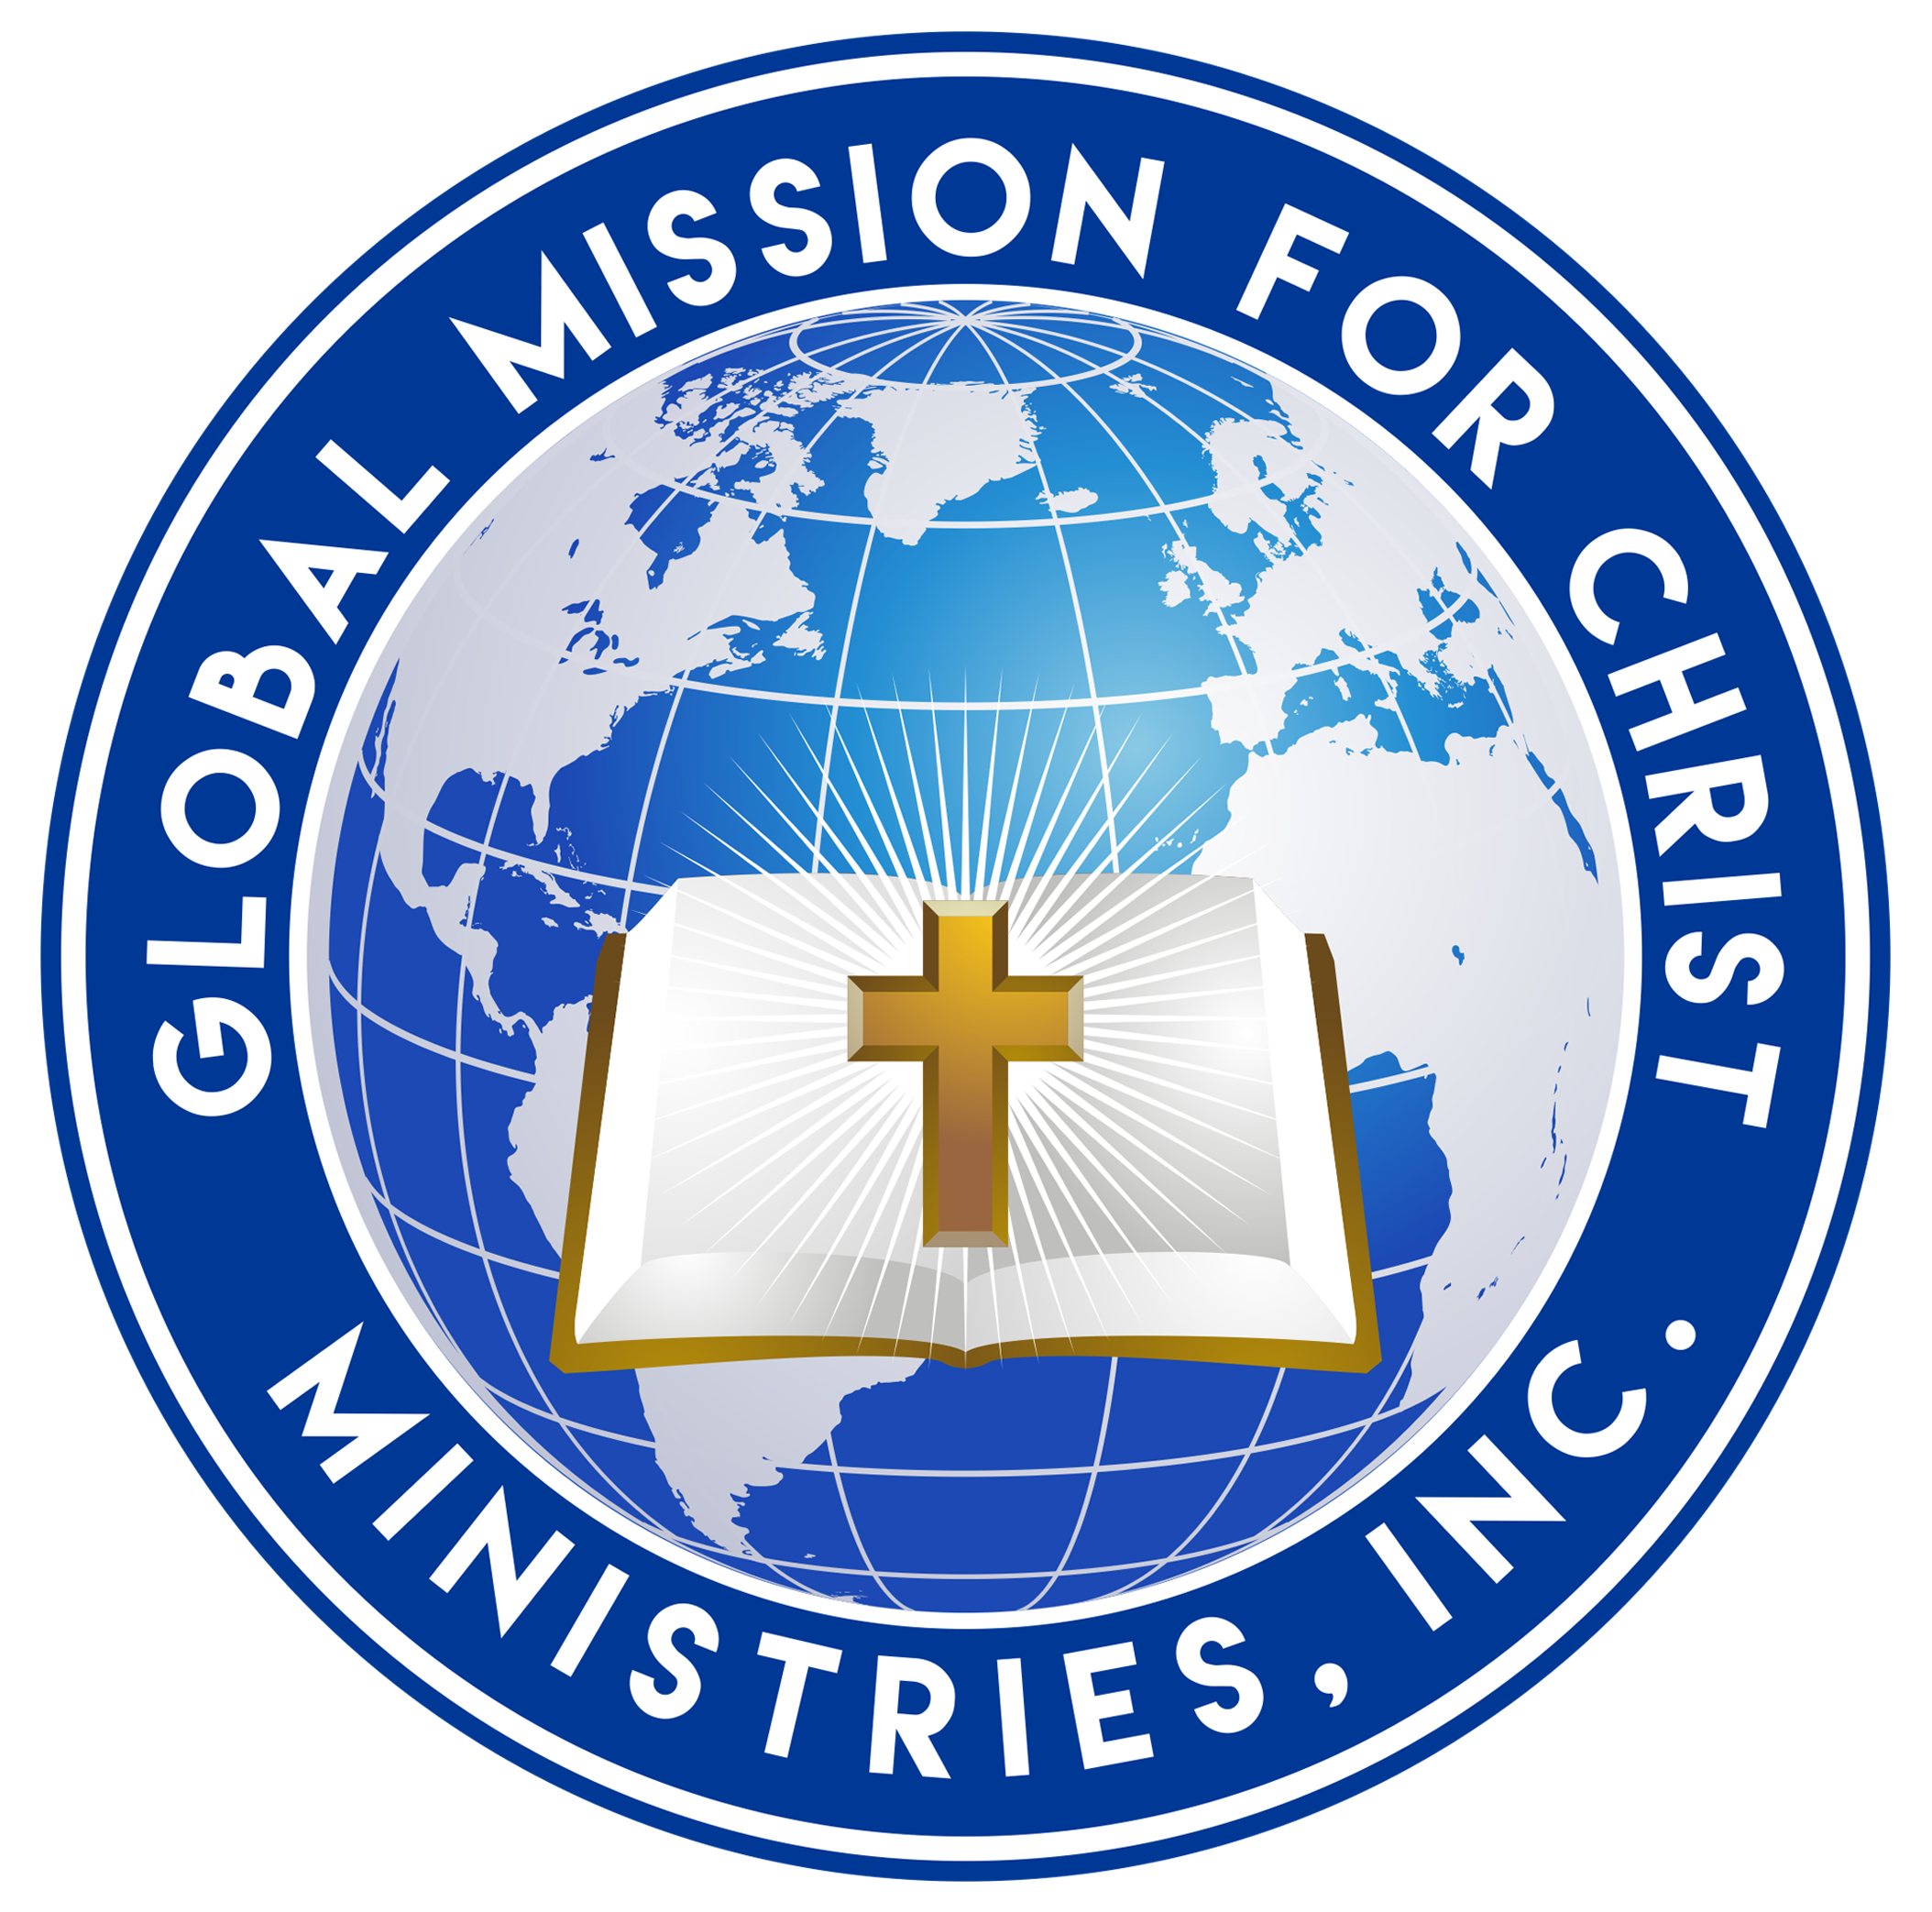 Global Mission for Christ Ministries